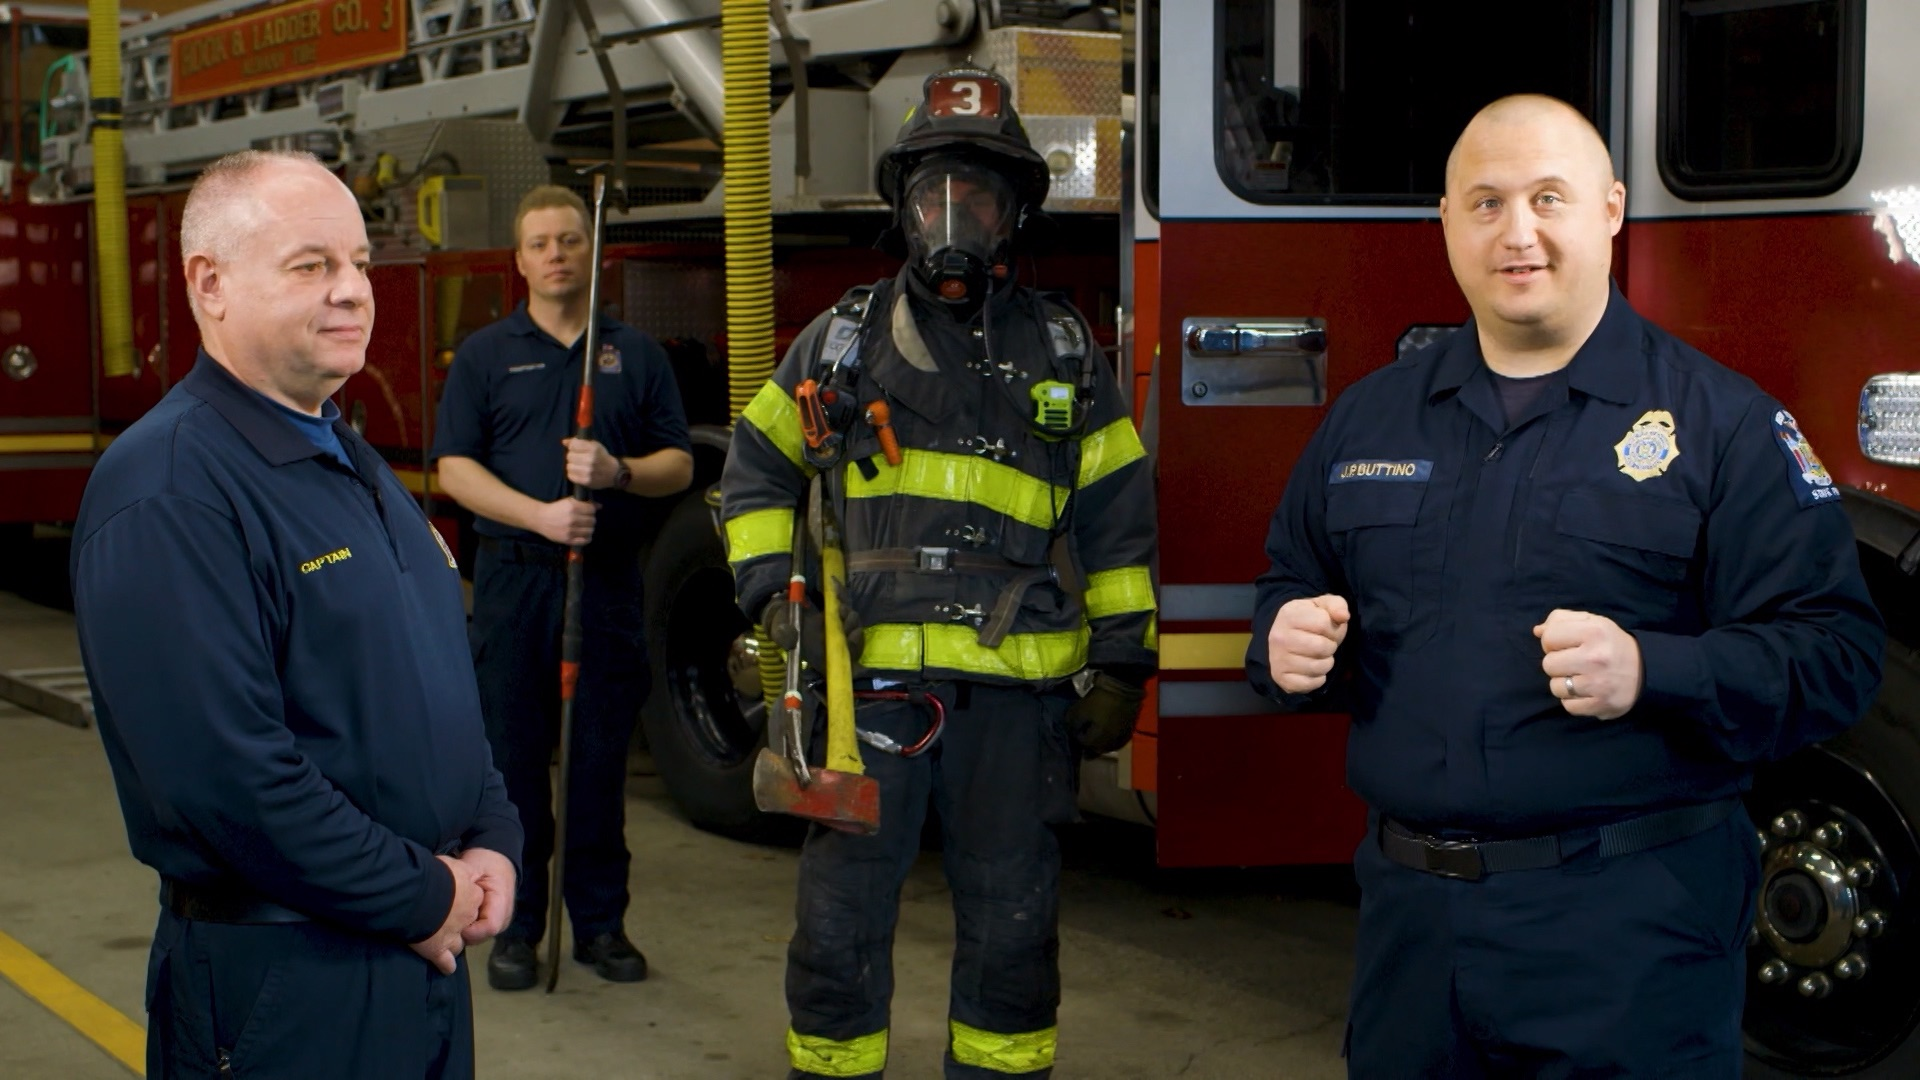 Four firefighters appear in different types of uniform in front of a firetruck.